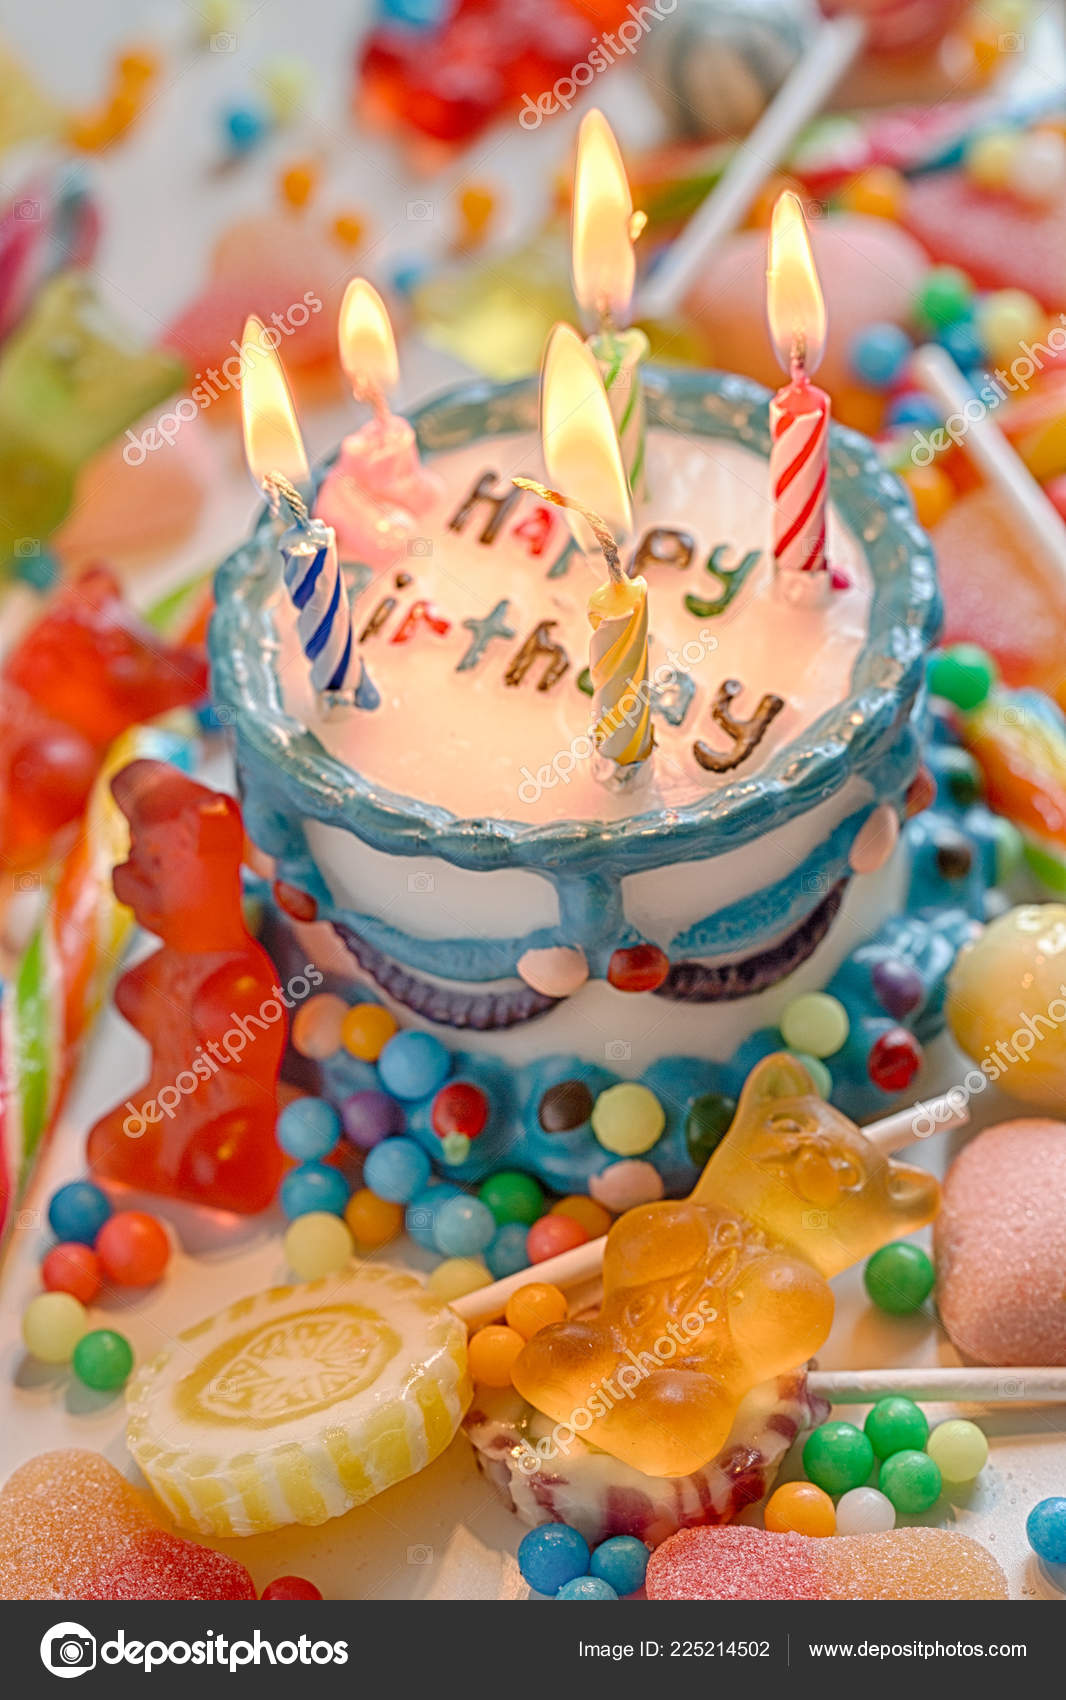 Marvelous Happy Birthday Cake Candles Stock Photo C Aguaviva 225214502 Funny Birthday Cards Online Inifofree Goldxyz